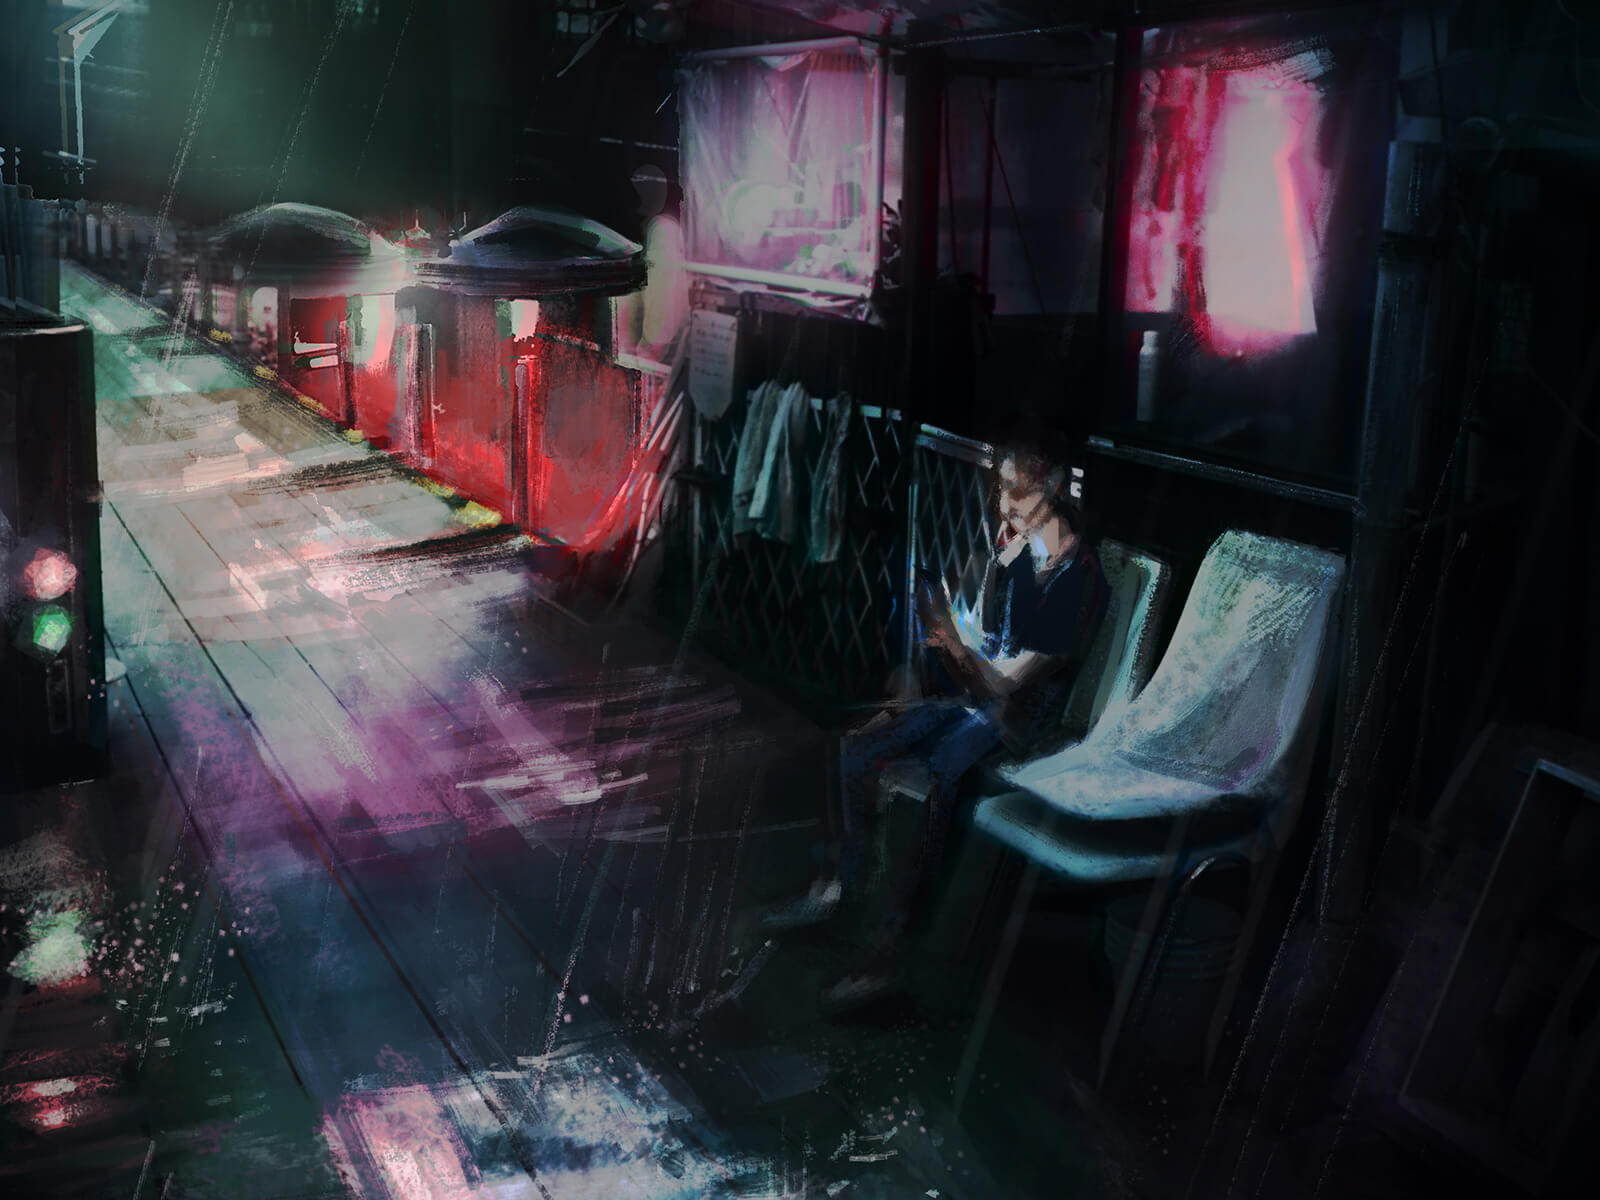 A man sits in a chair on a darkened rainy street